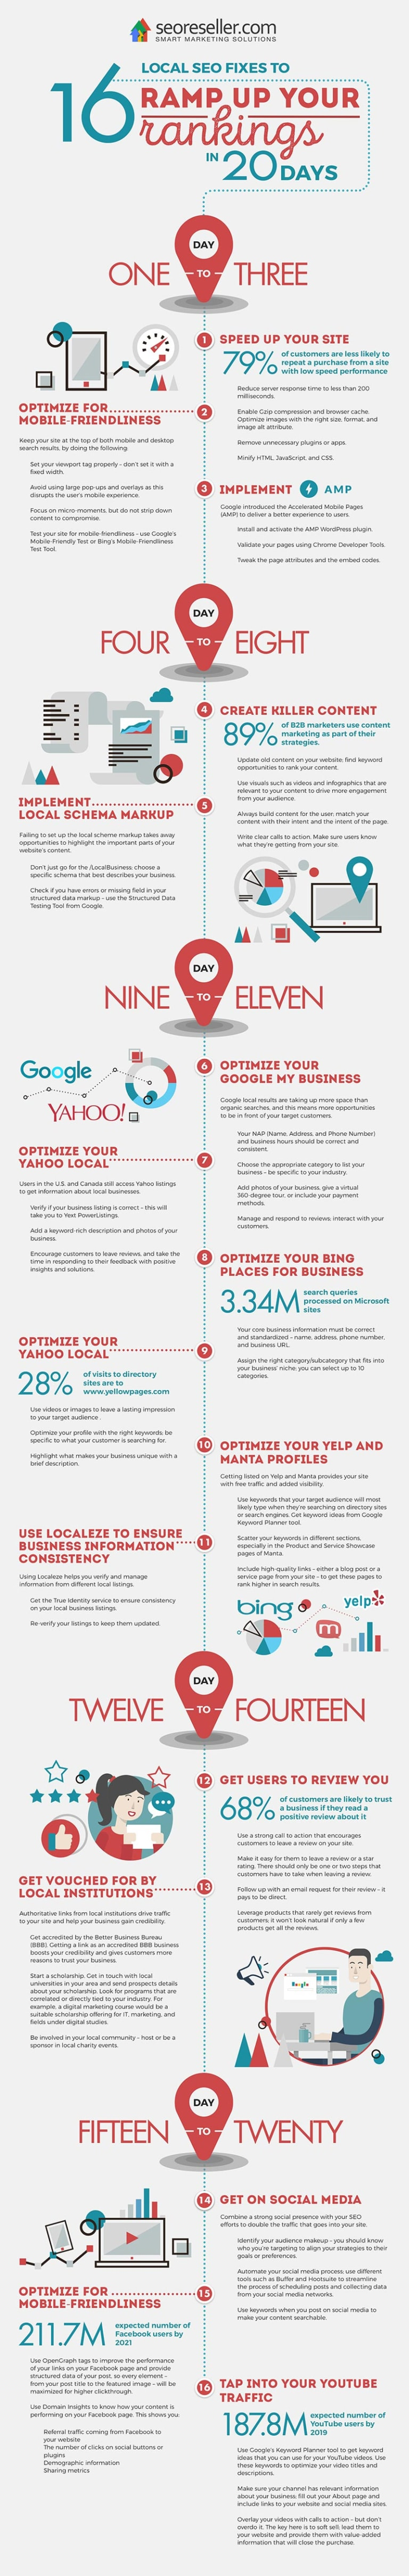 Infographic outlines SEO tips